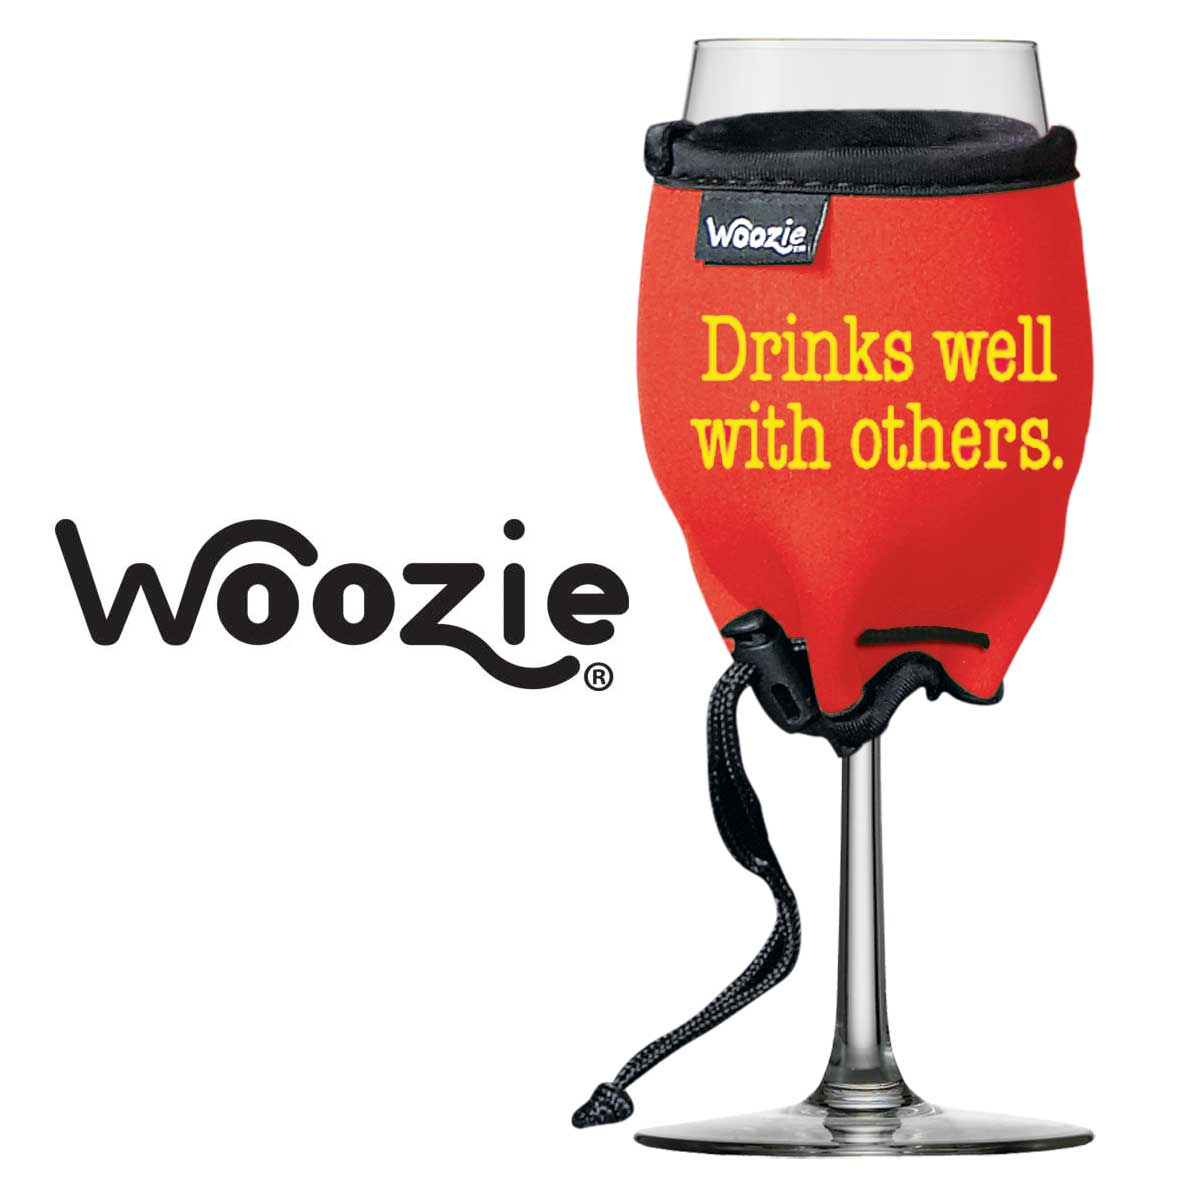 Woozie Words, Drinks Well With Others